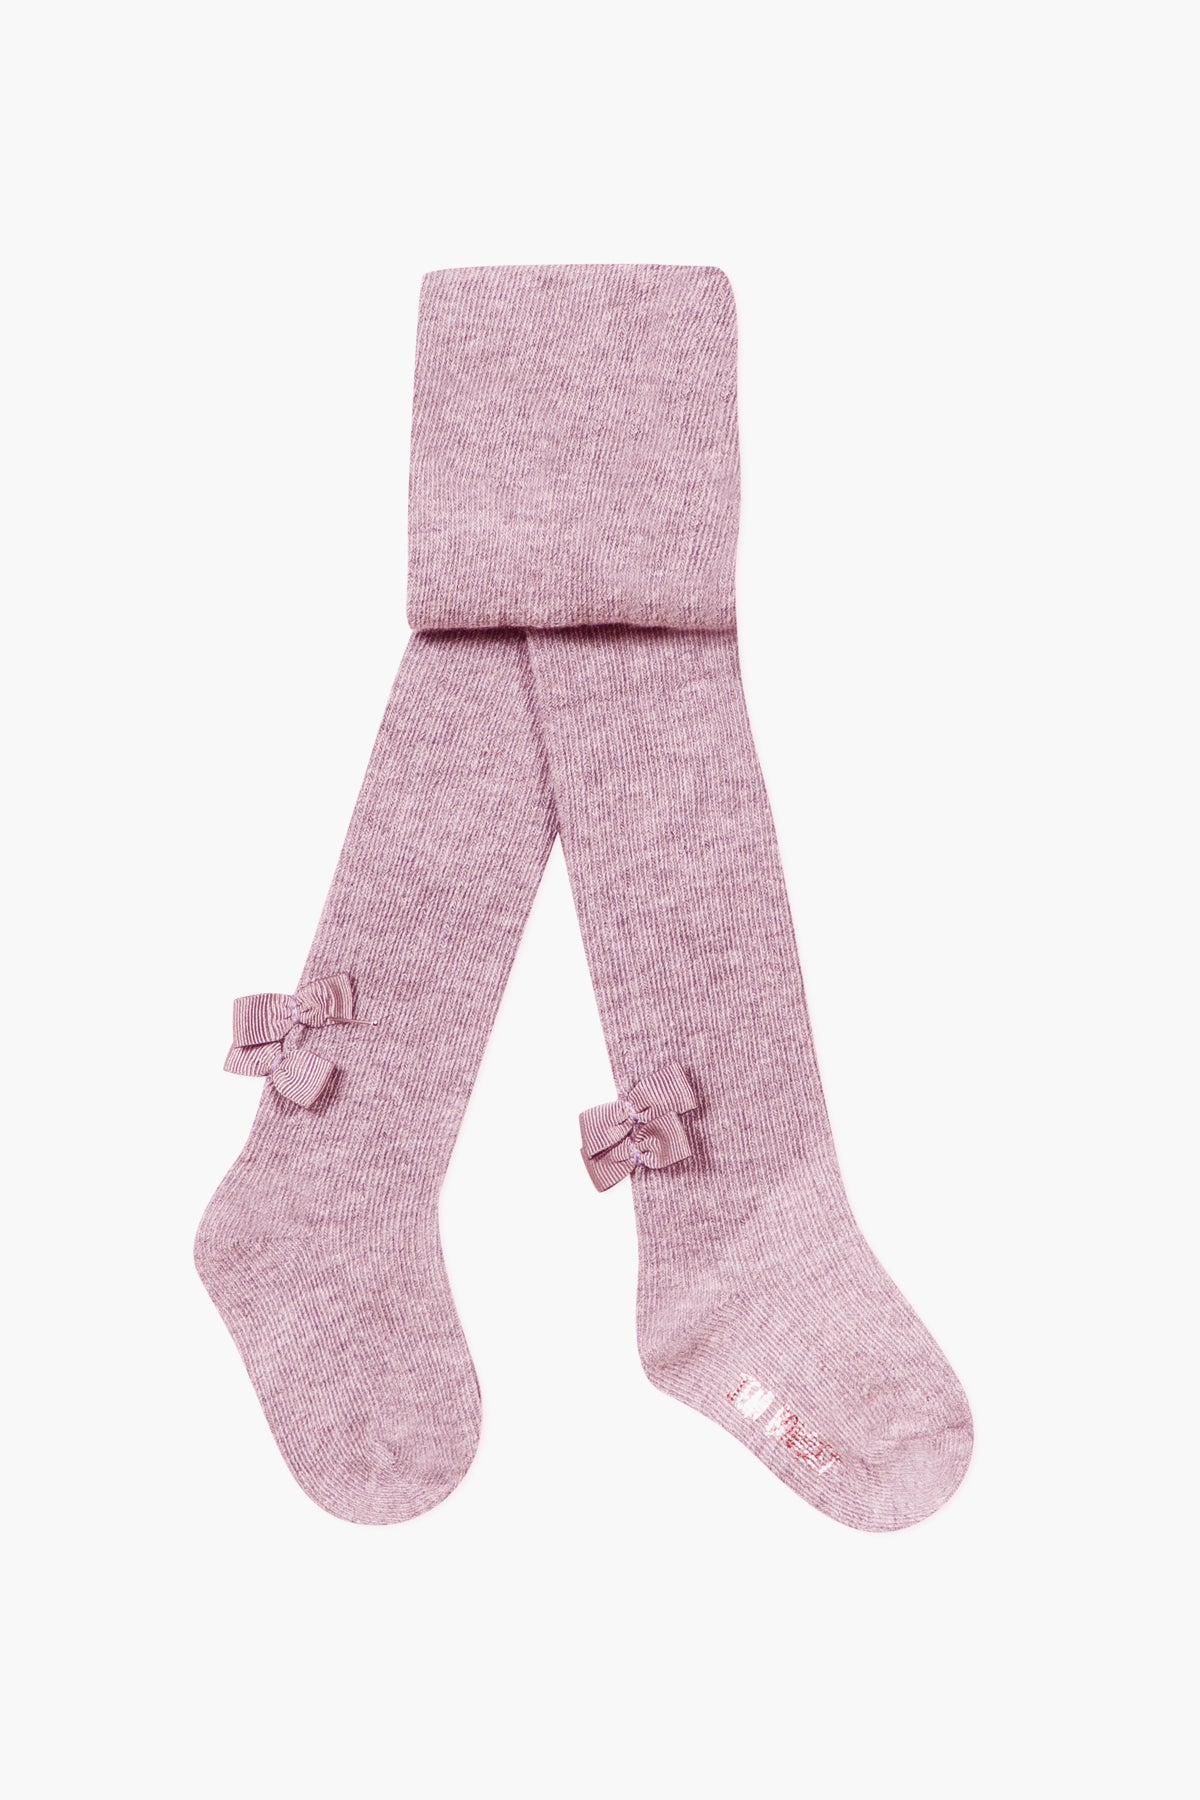 Jean Bourget Baby Tights - Pink